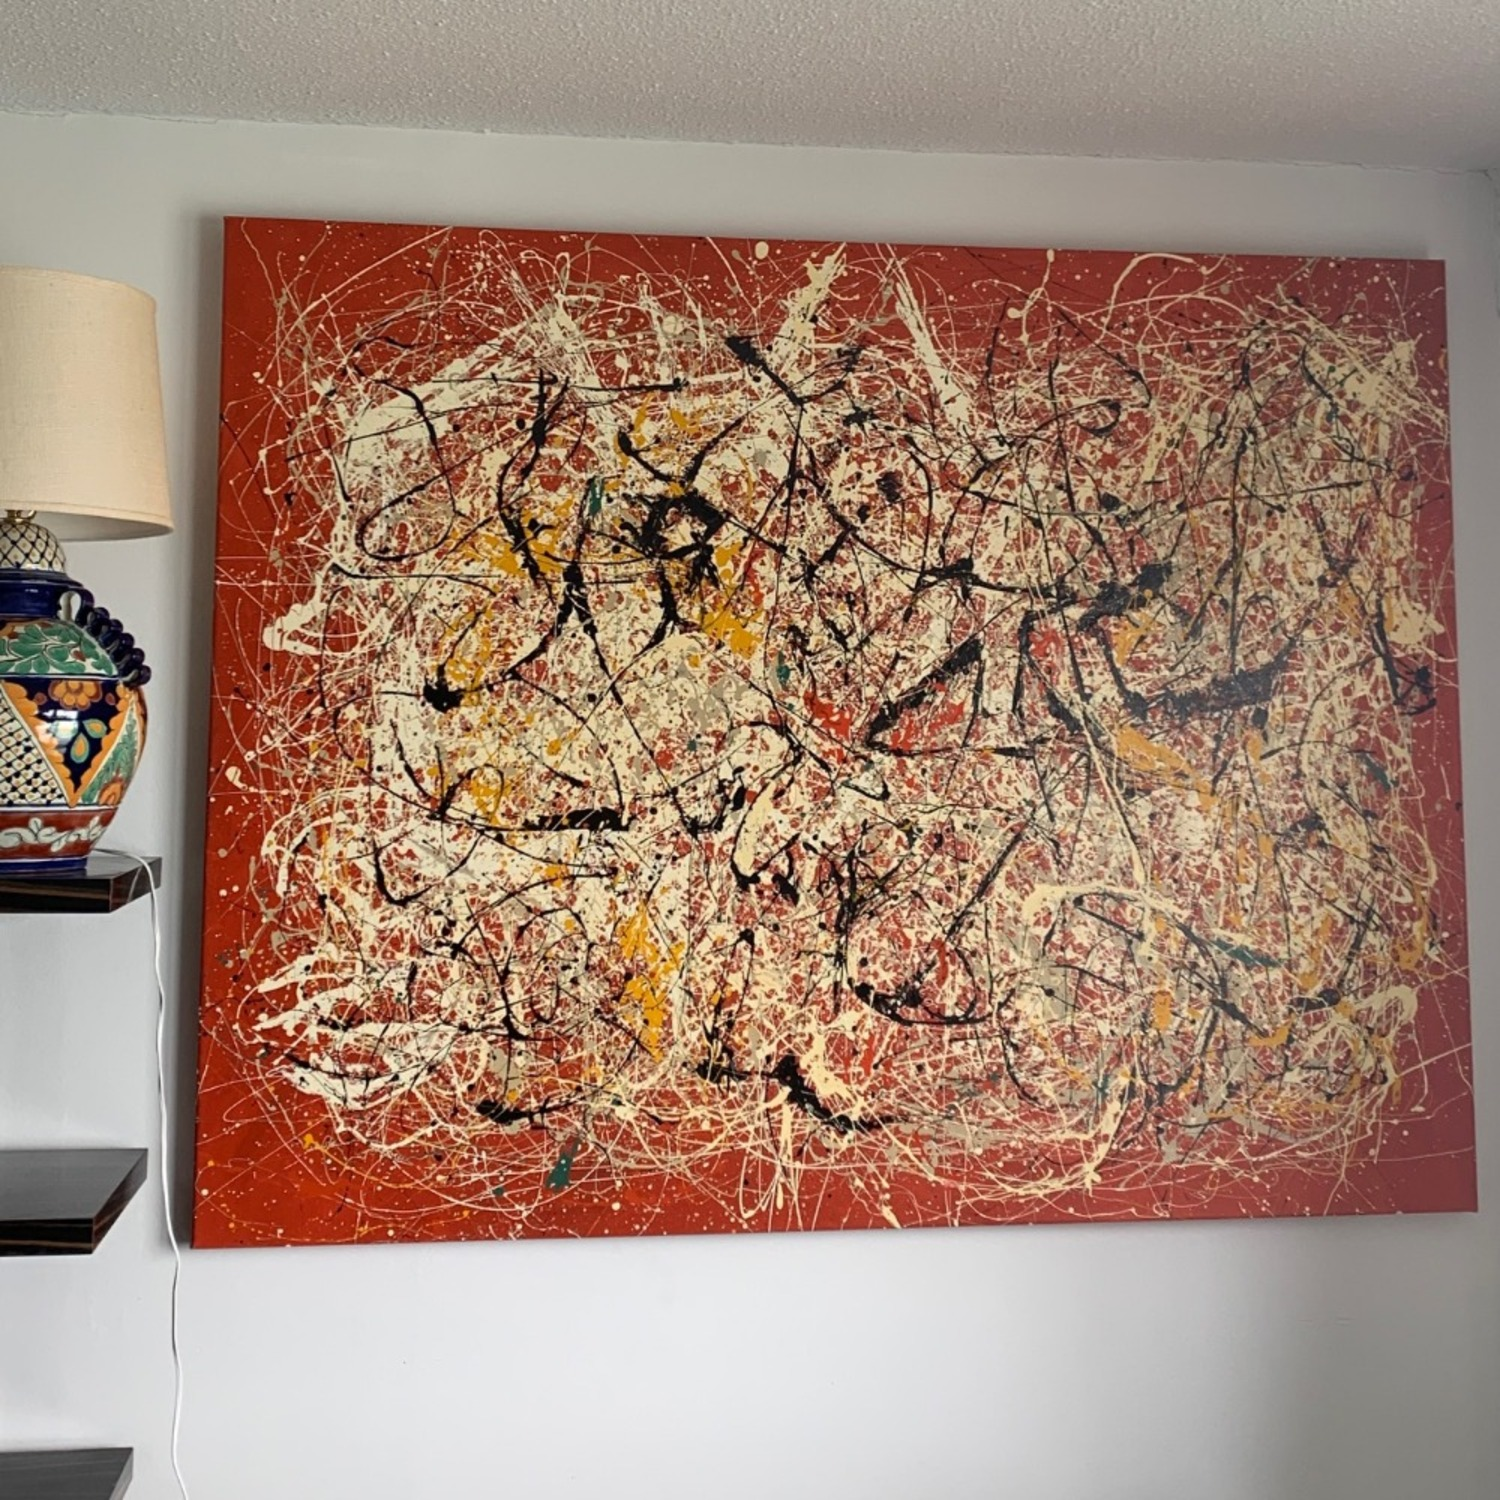 XL Painting- Jackson Pollock Reproduction - image-1